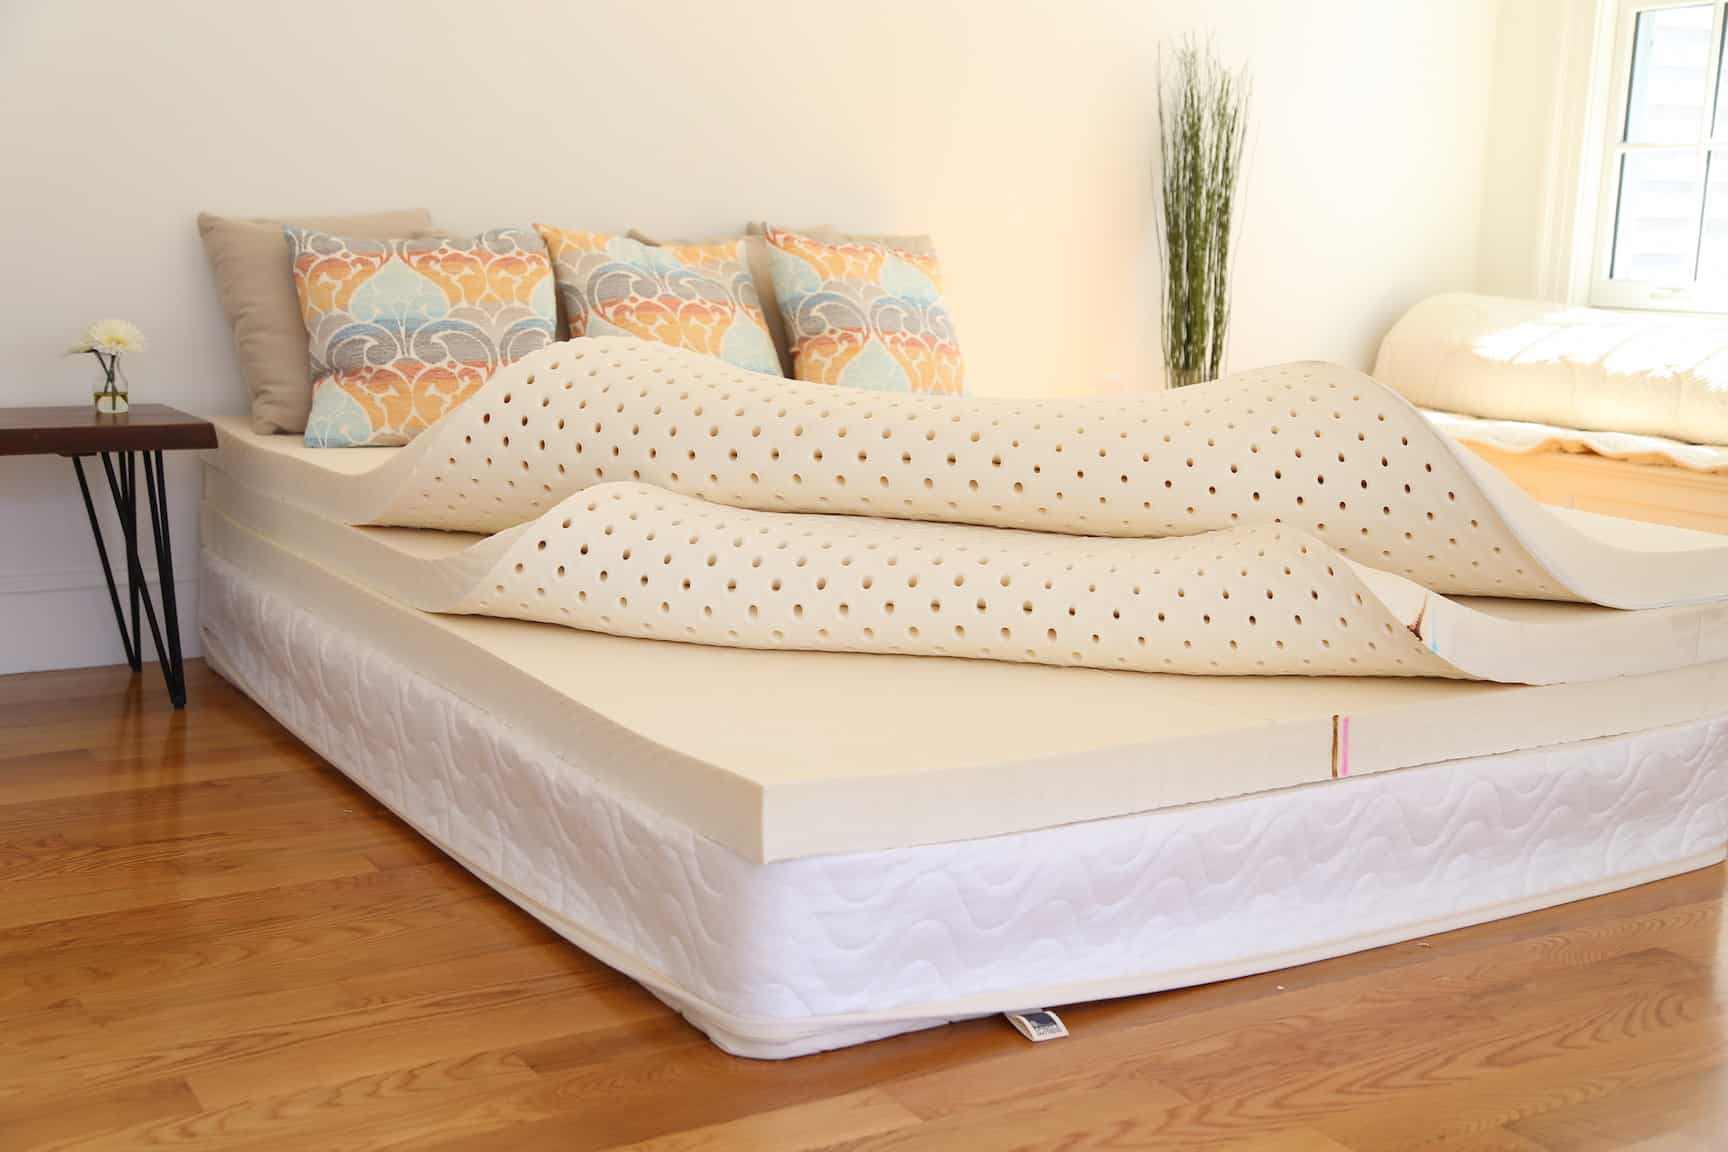 Foam Or Latex Mattresses 5 Best Latex Mattress From Experts 2019 Updated